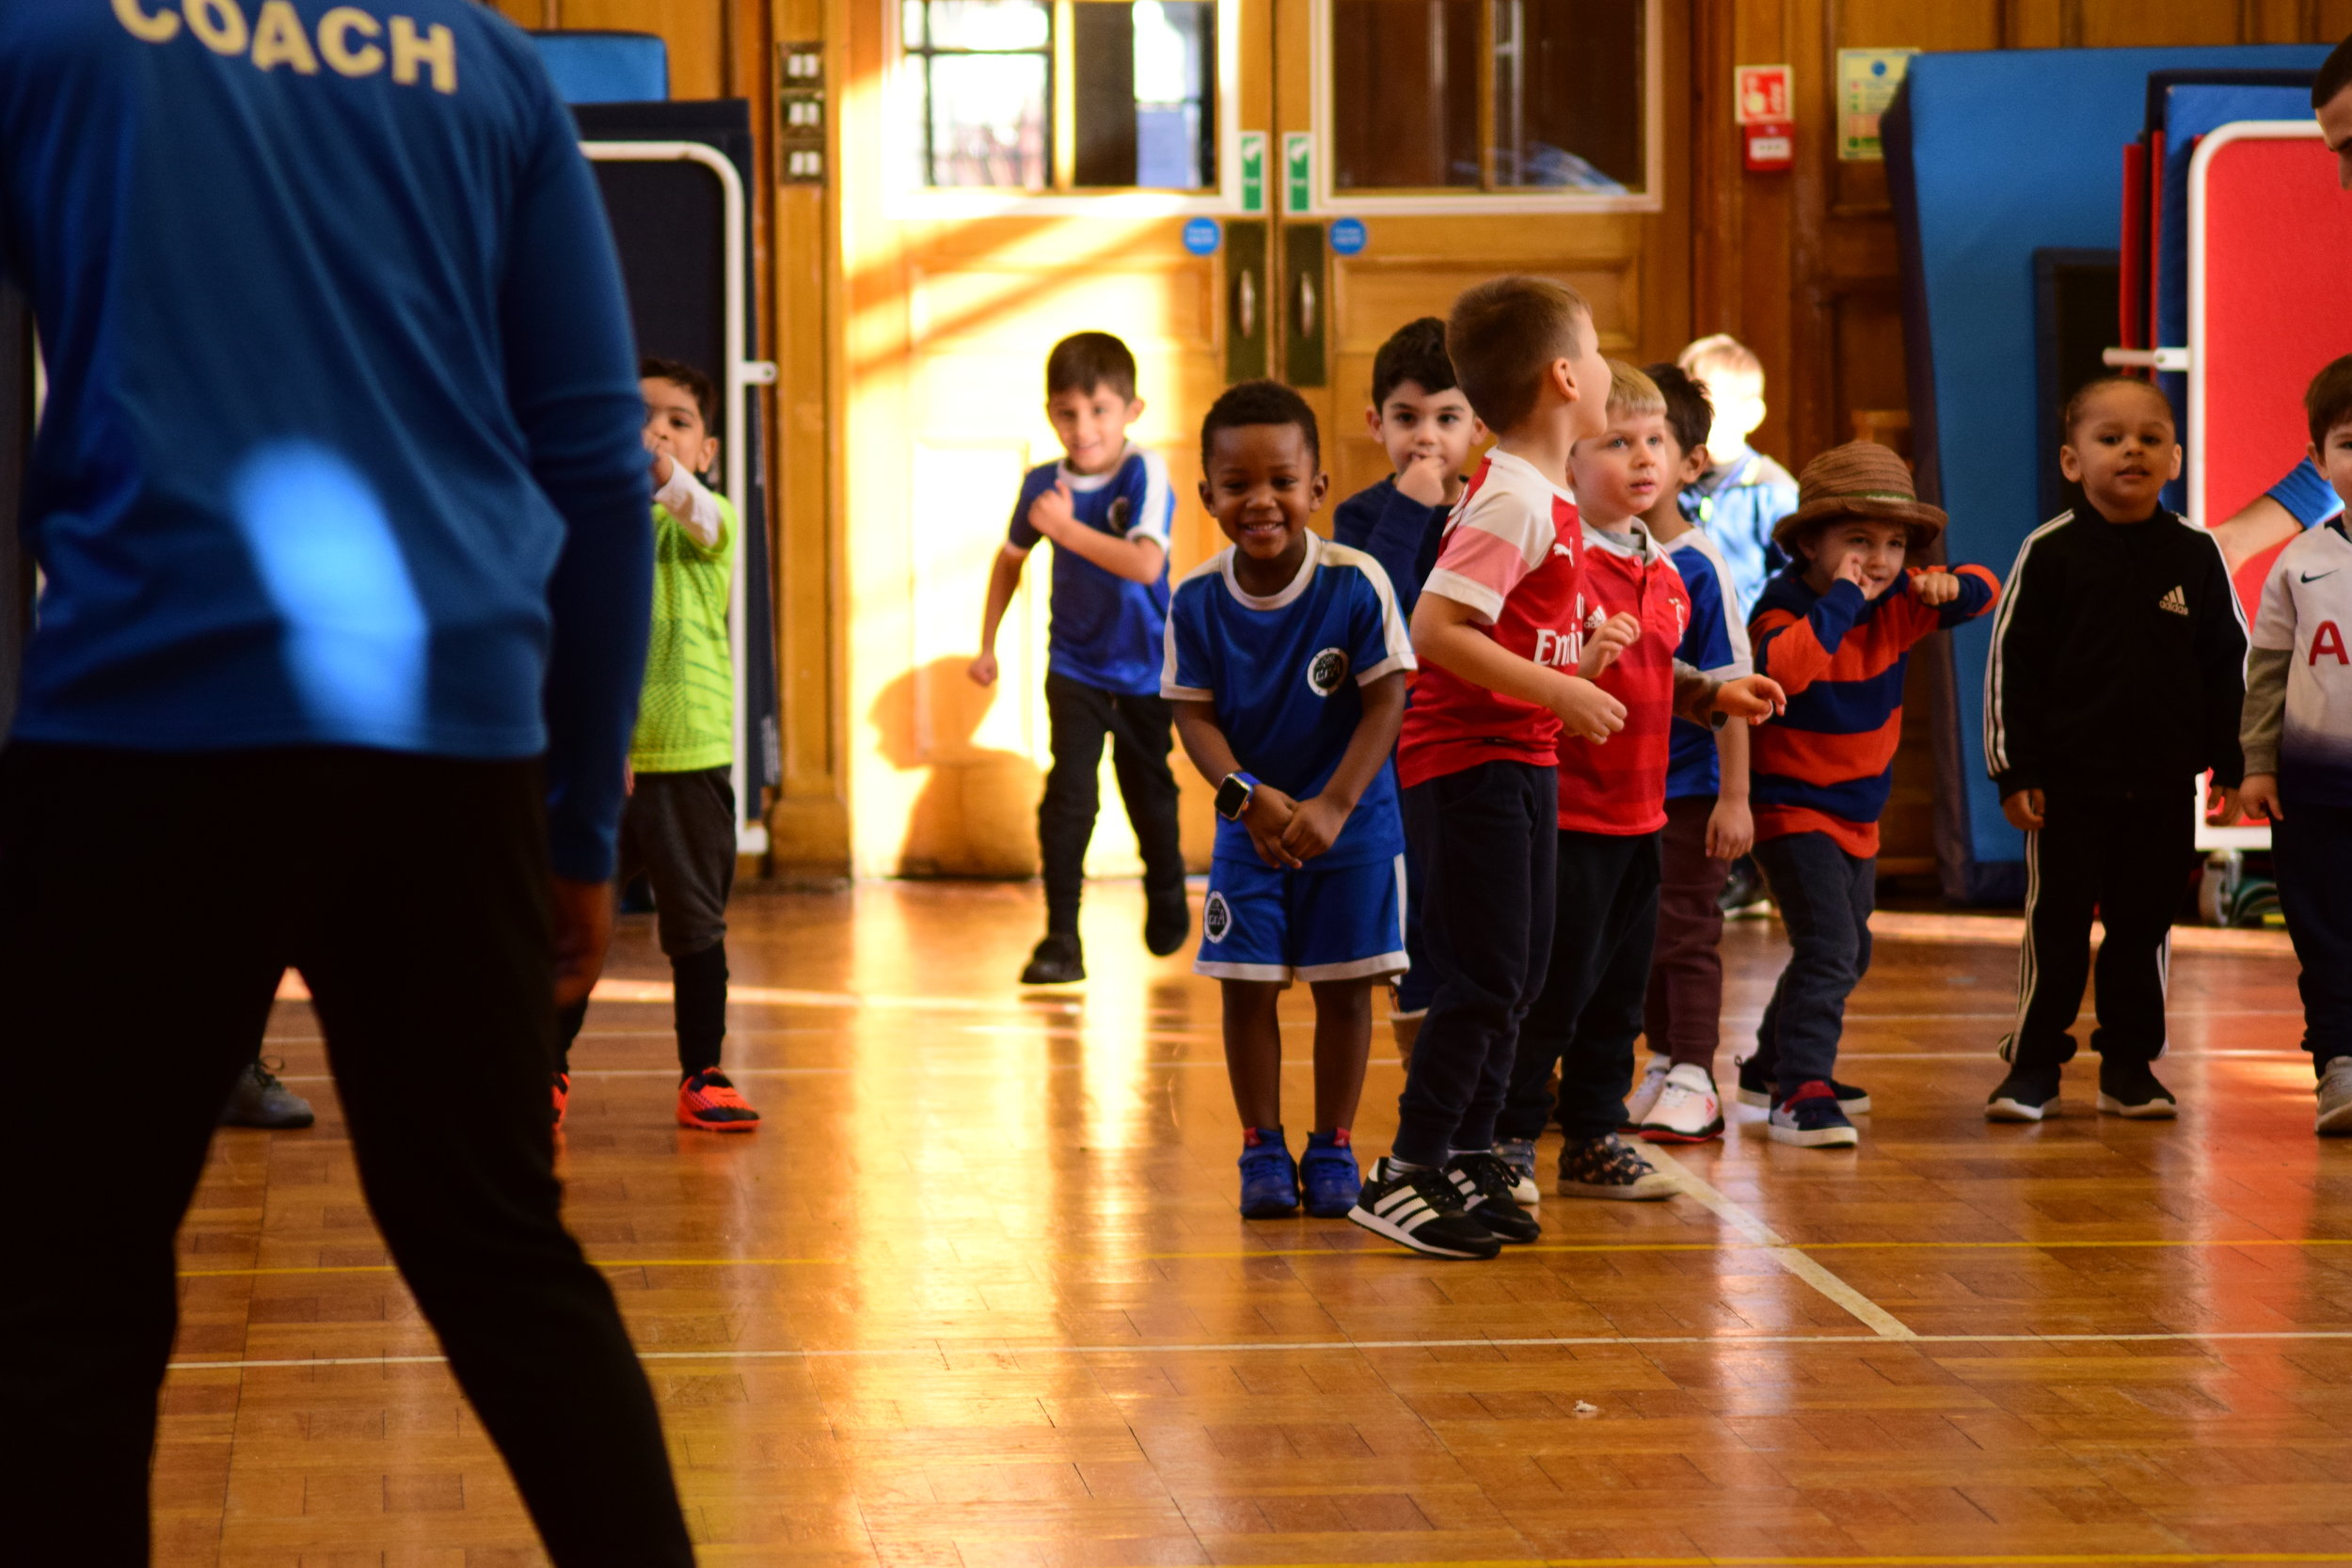 Busy Bees Enfield - Thursday: Football sessions at Busy Bees Enfield*Promotional offer - £2.50 per class until October half-term (there-after it will be £5 per class)